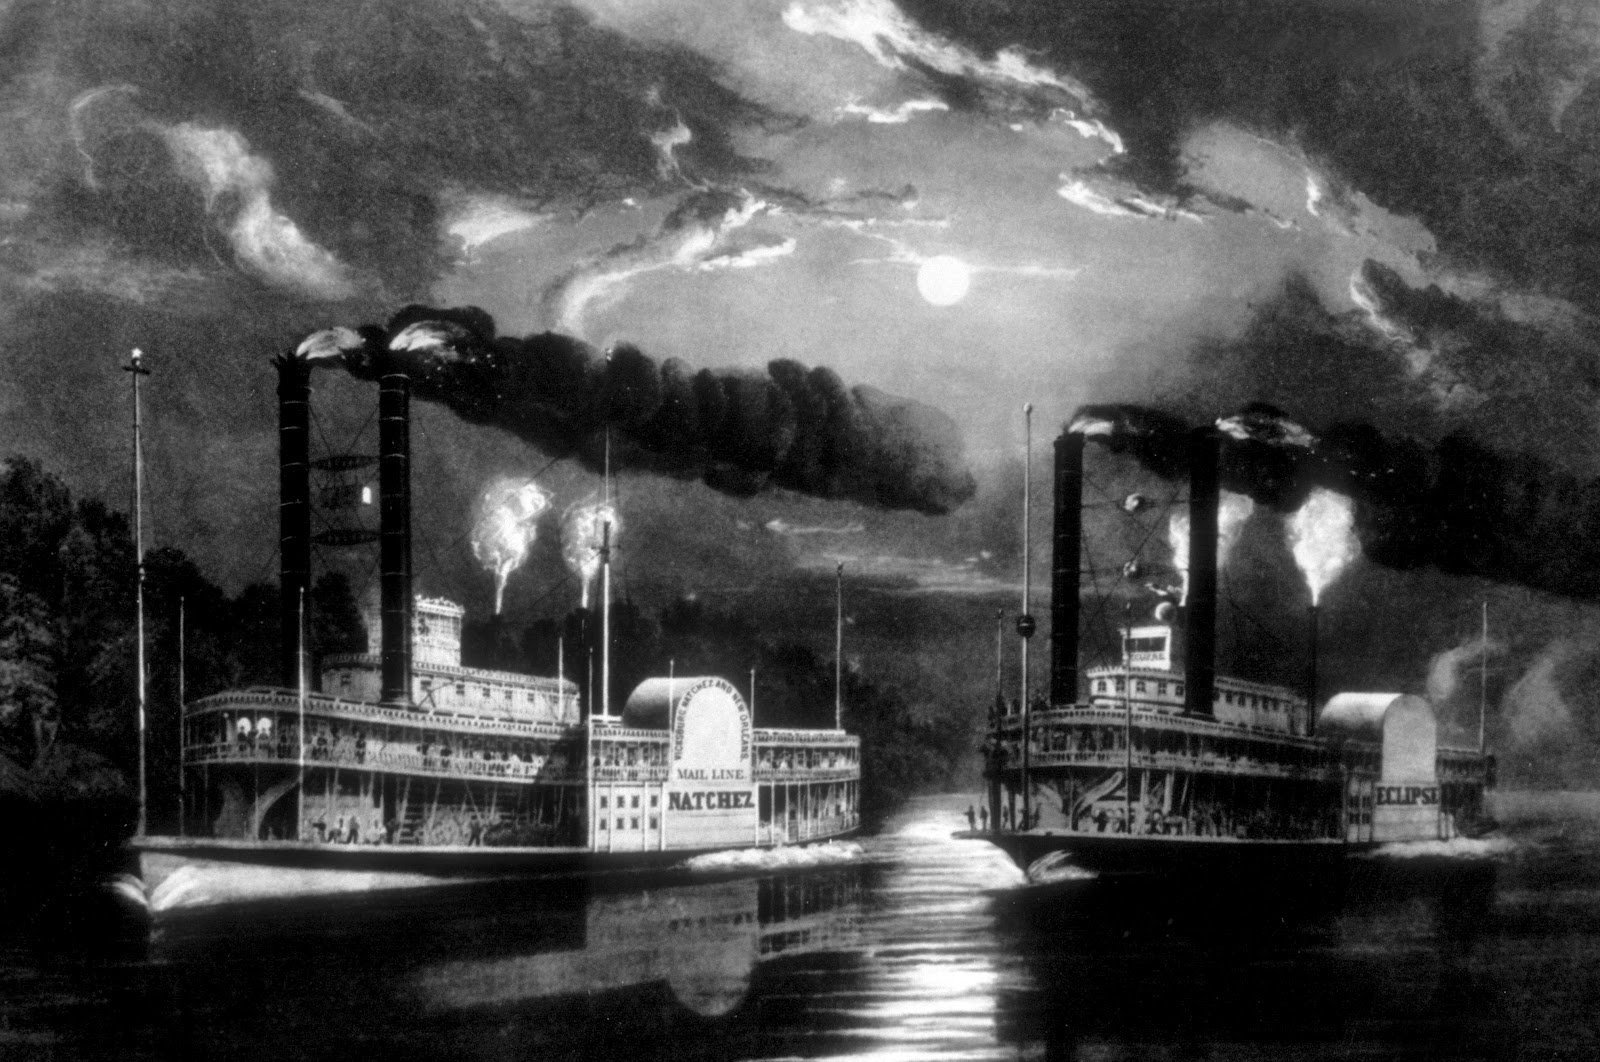 a history of steamboats an invention from the industrial revolution In the newspapers newspapers are a good primary source for tracing the story of the steamboat on september 2, 1807, less that two weeks after he had successfully steamed up to albany and back, robert fulton ran an ad in the new york city papers, including the american citizen, for service between the two cities.